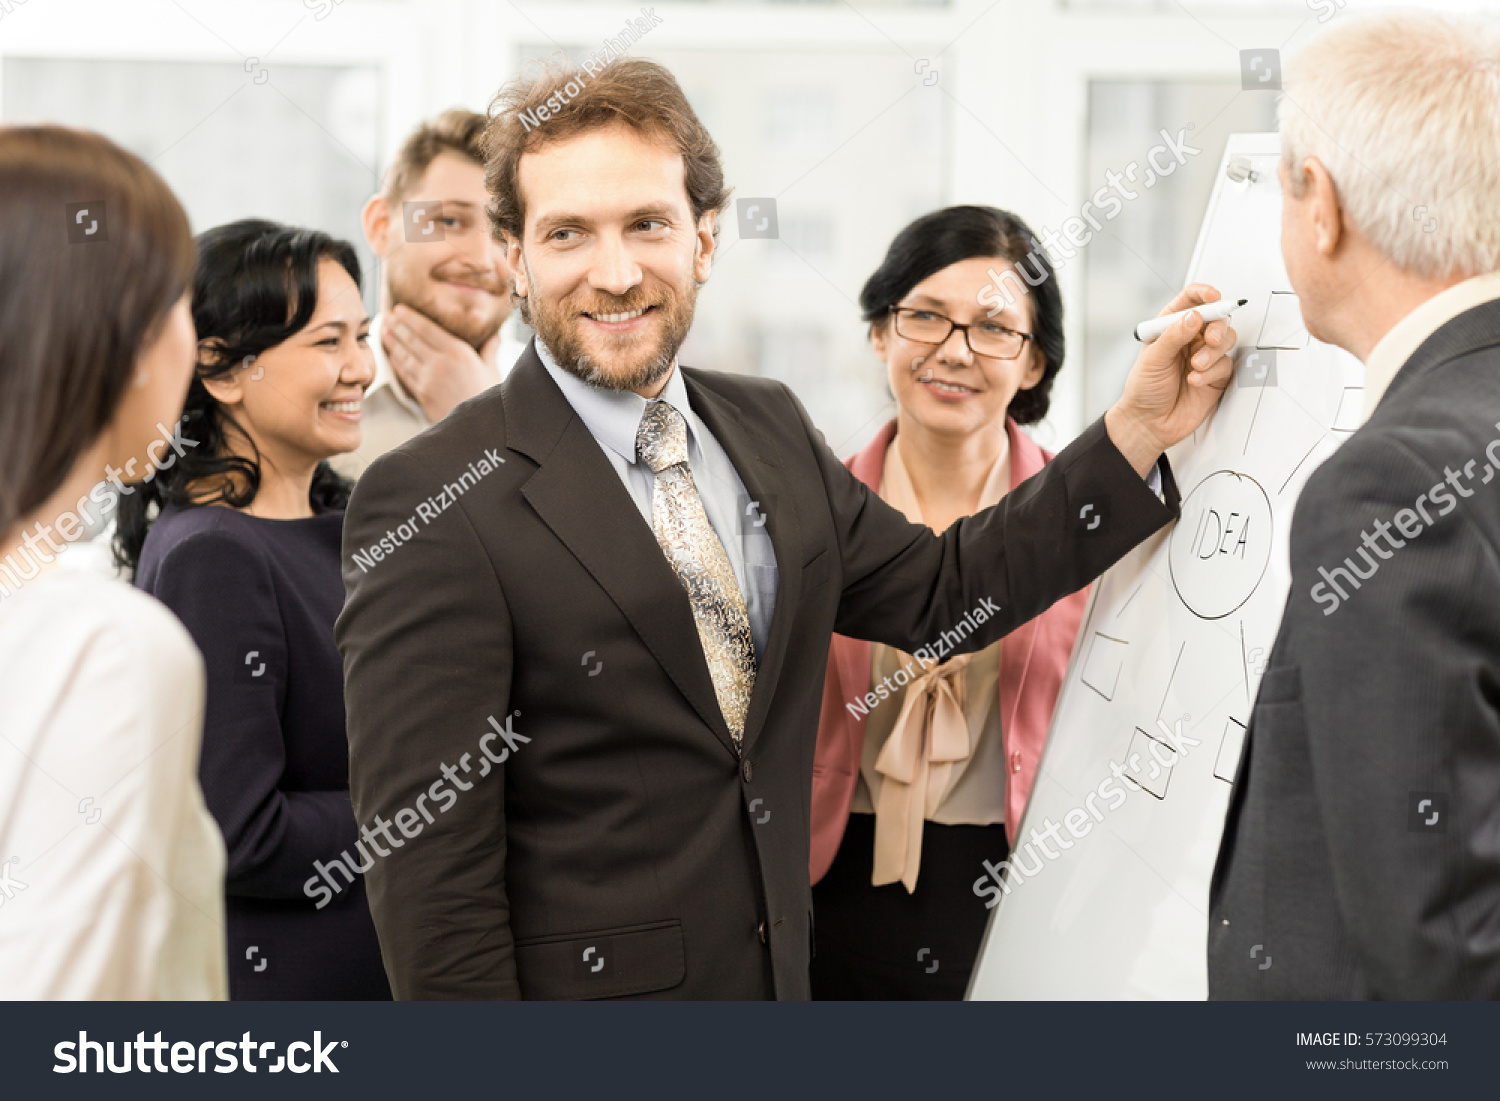 how to appear confident during presentation